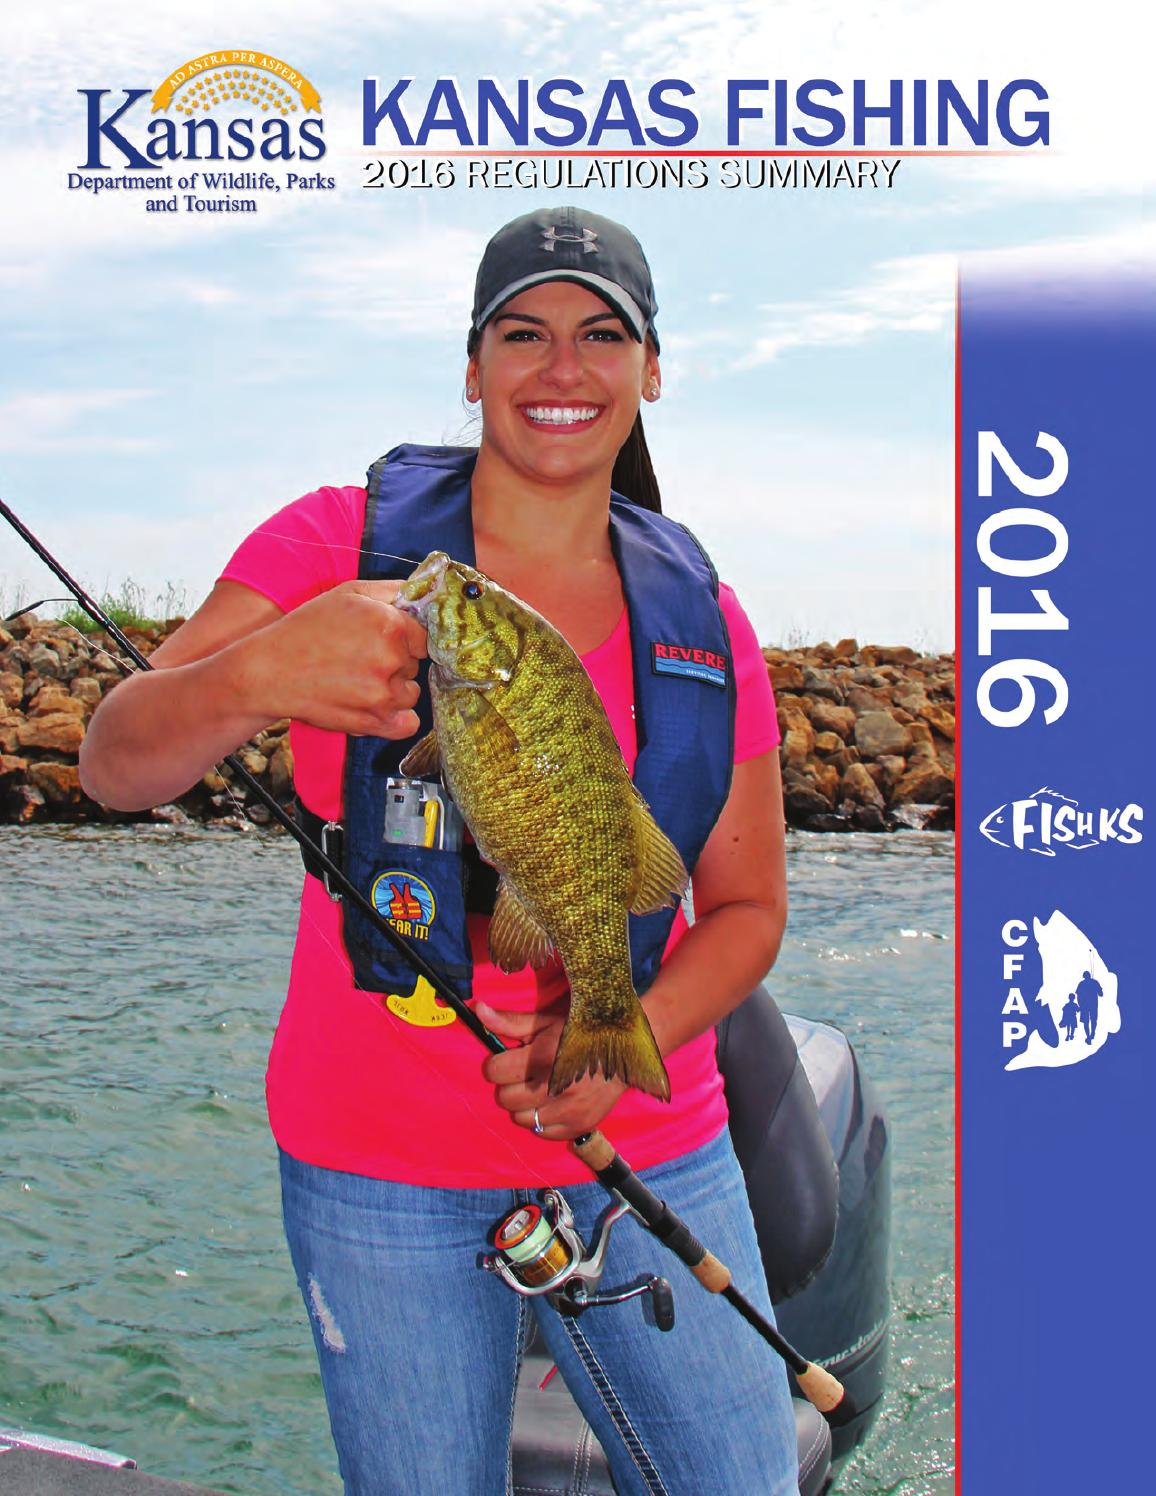 2016 kansas fishing regulations by kansas department of